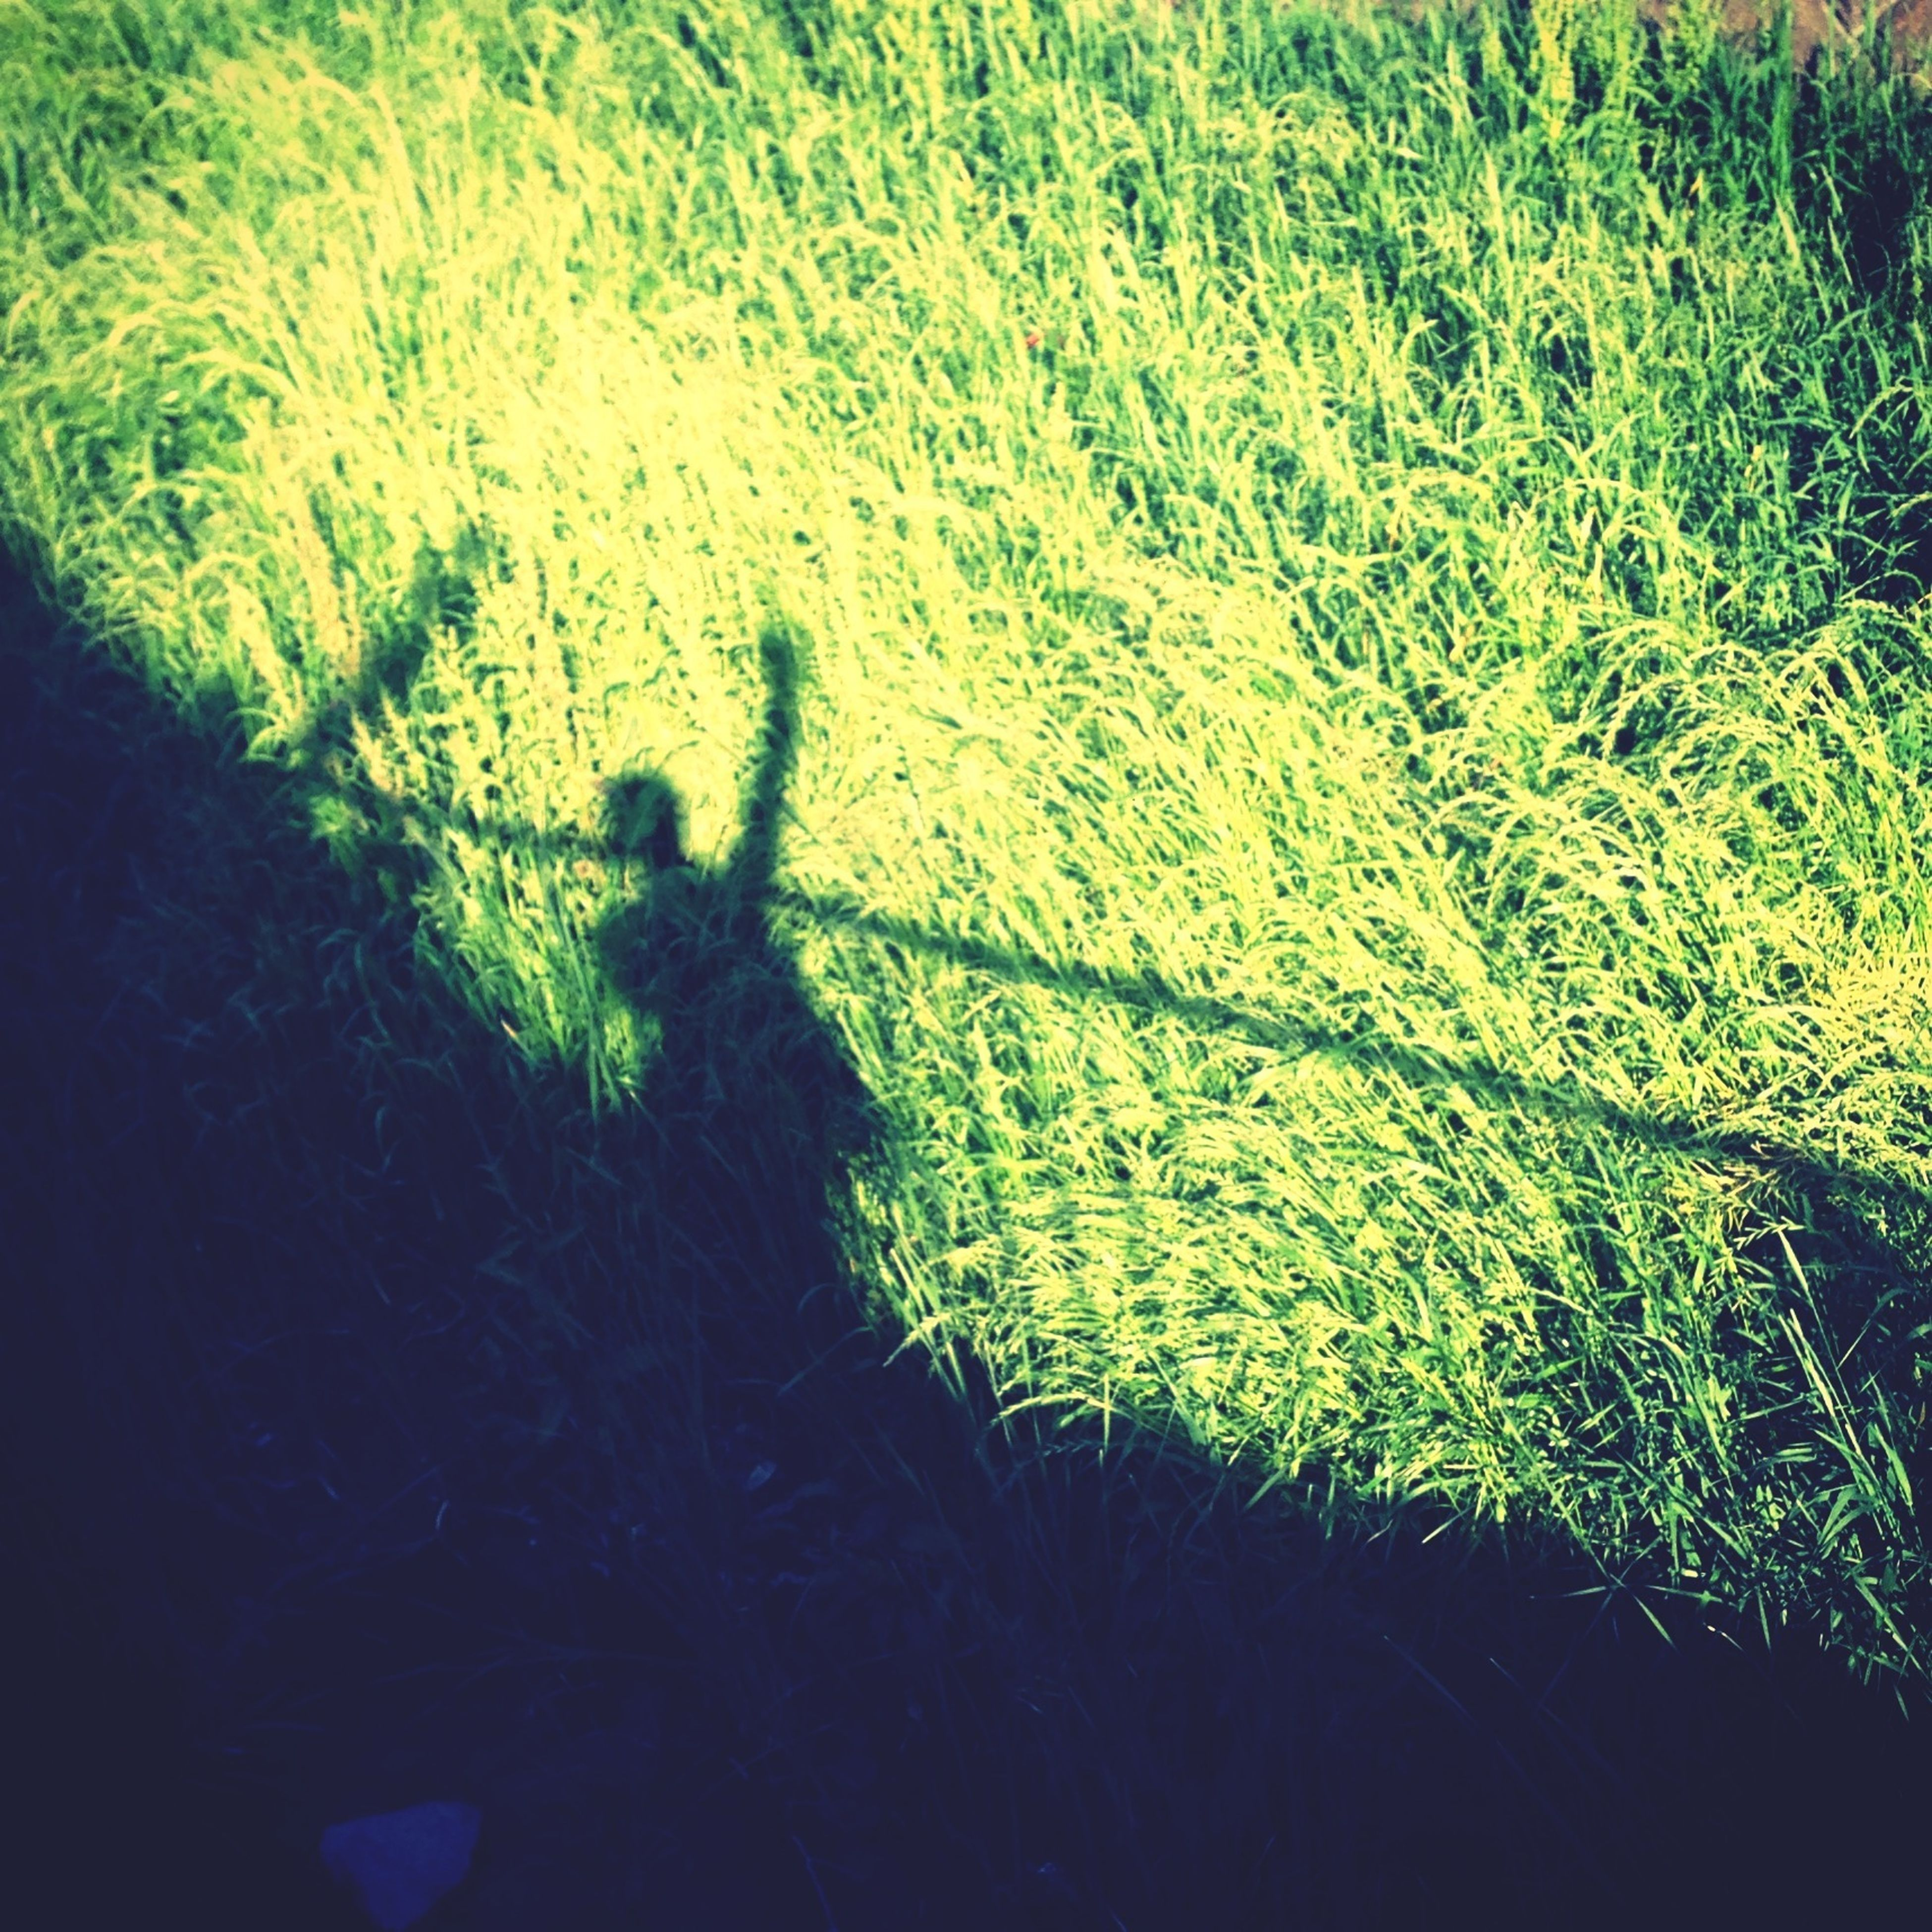 shadow, high angle view, grass, focus on shadow, field, sunlight, growth, nature, green color, unrecognizable person, plant, grassy, outdoors, day, walking, animal themes, lifestyles, tranquility